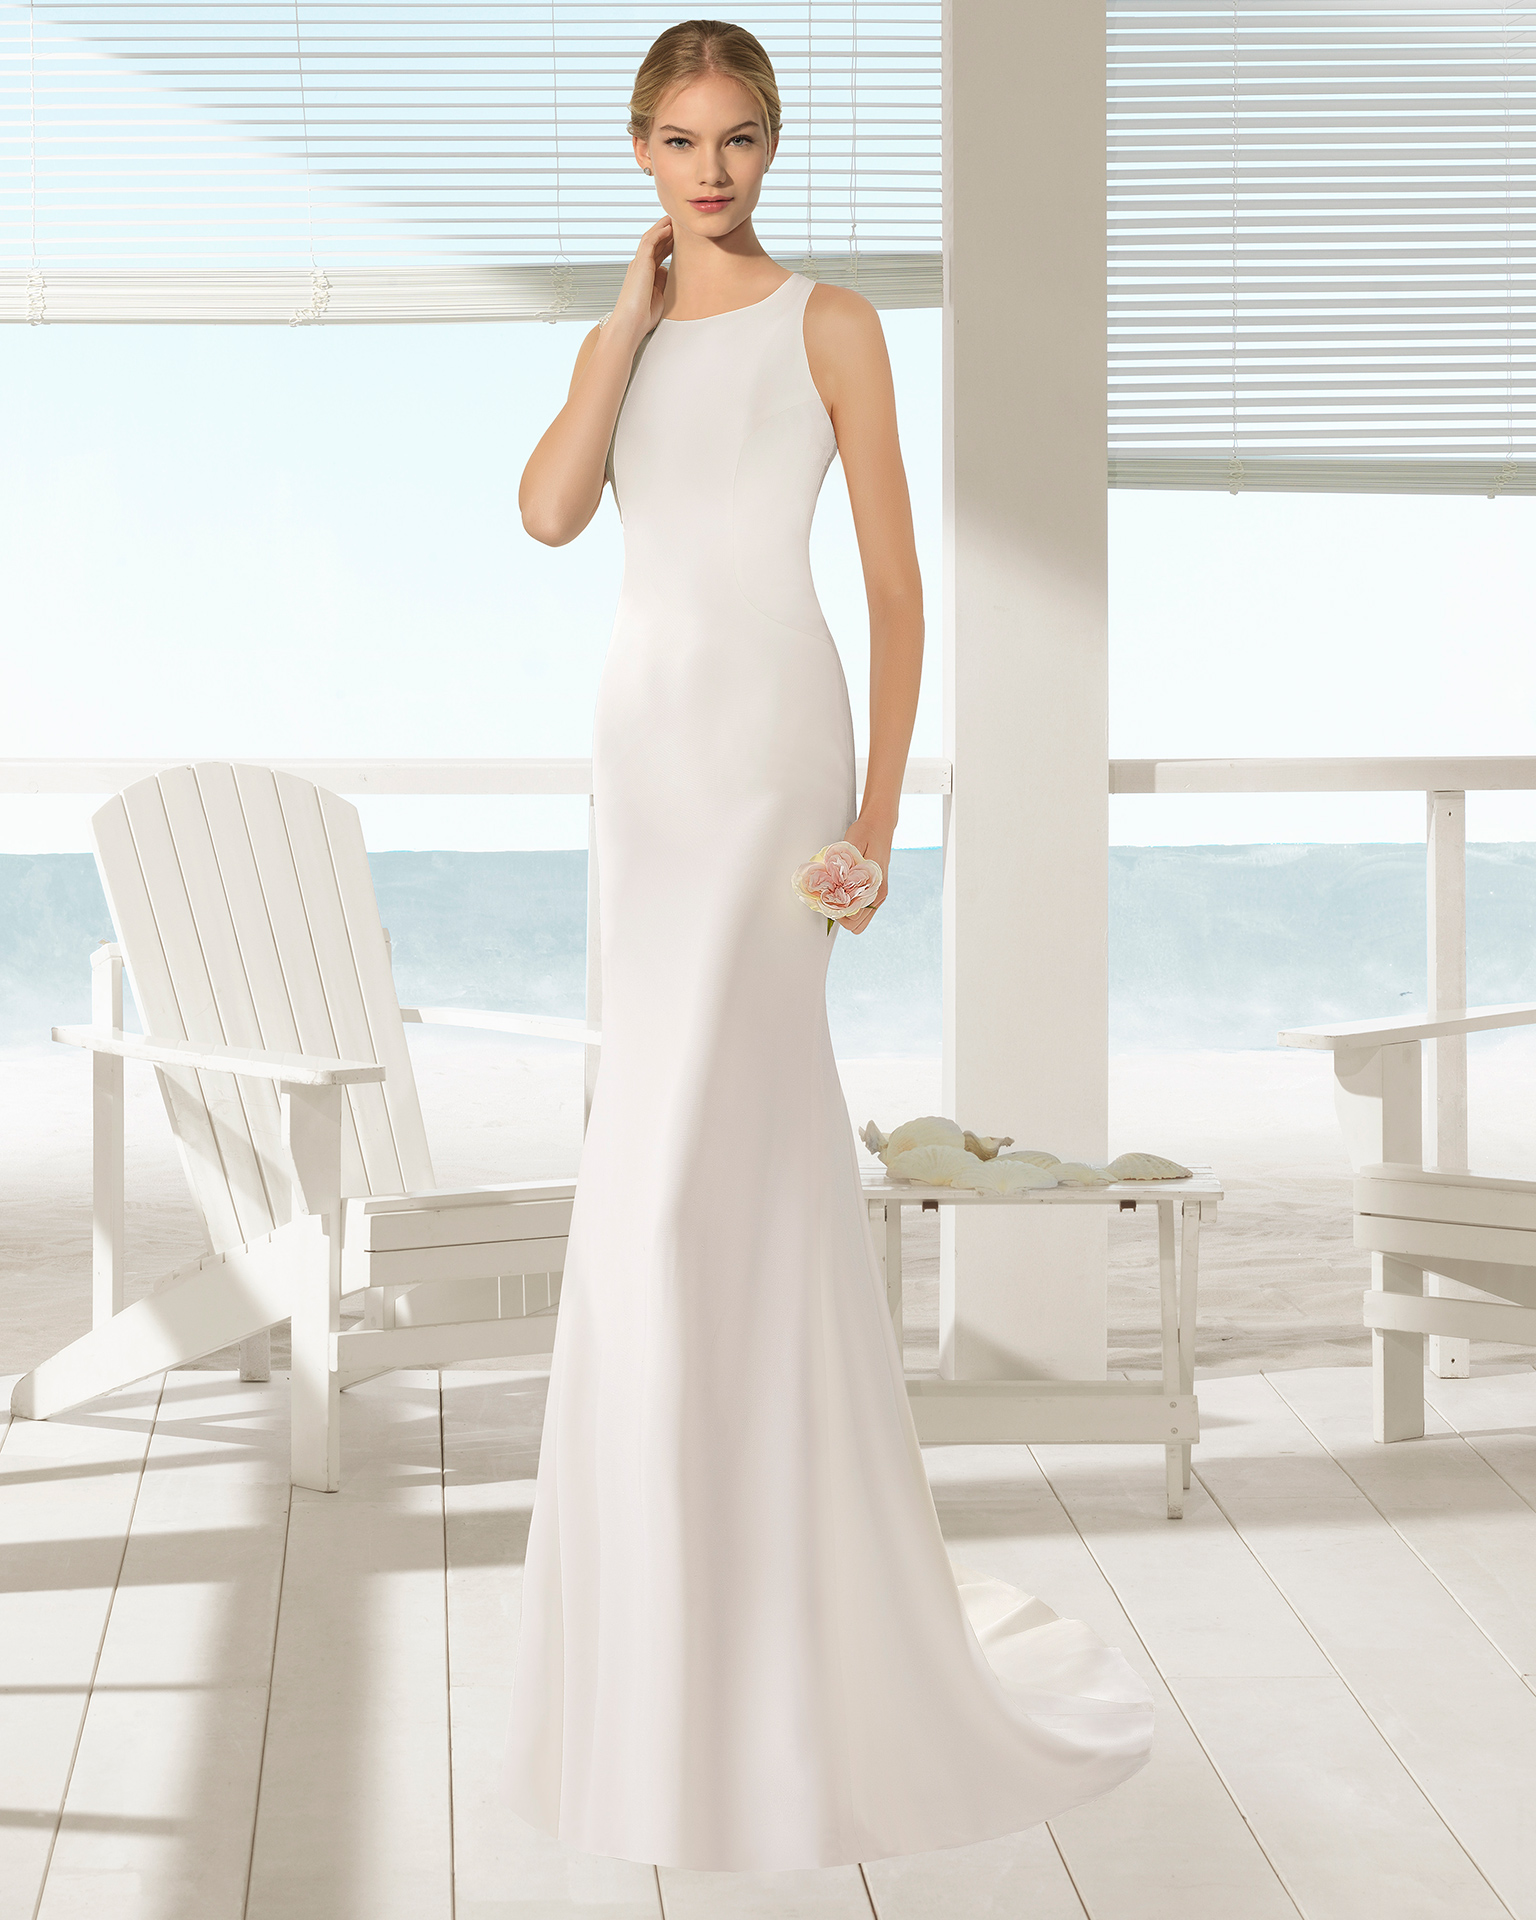 Crepe sheath wedding dress with round neck and open back, in natural.